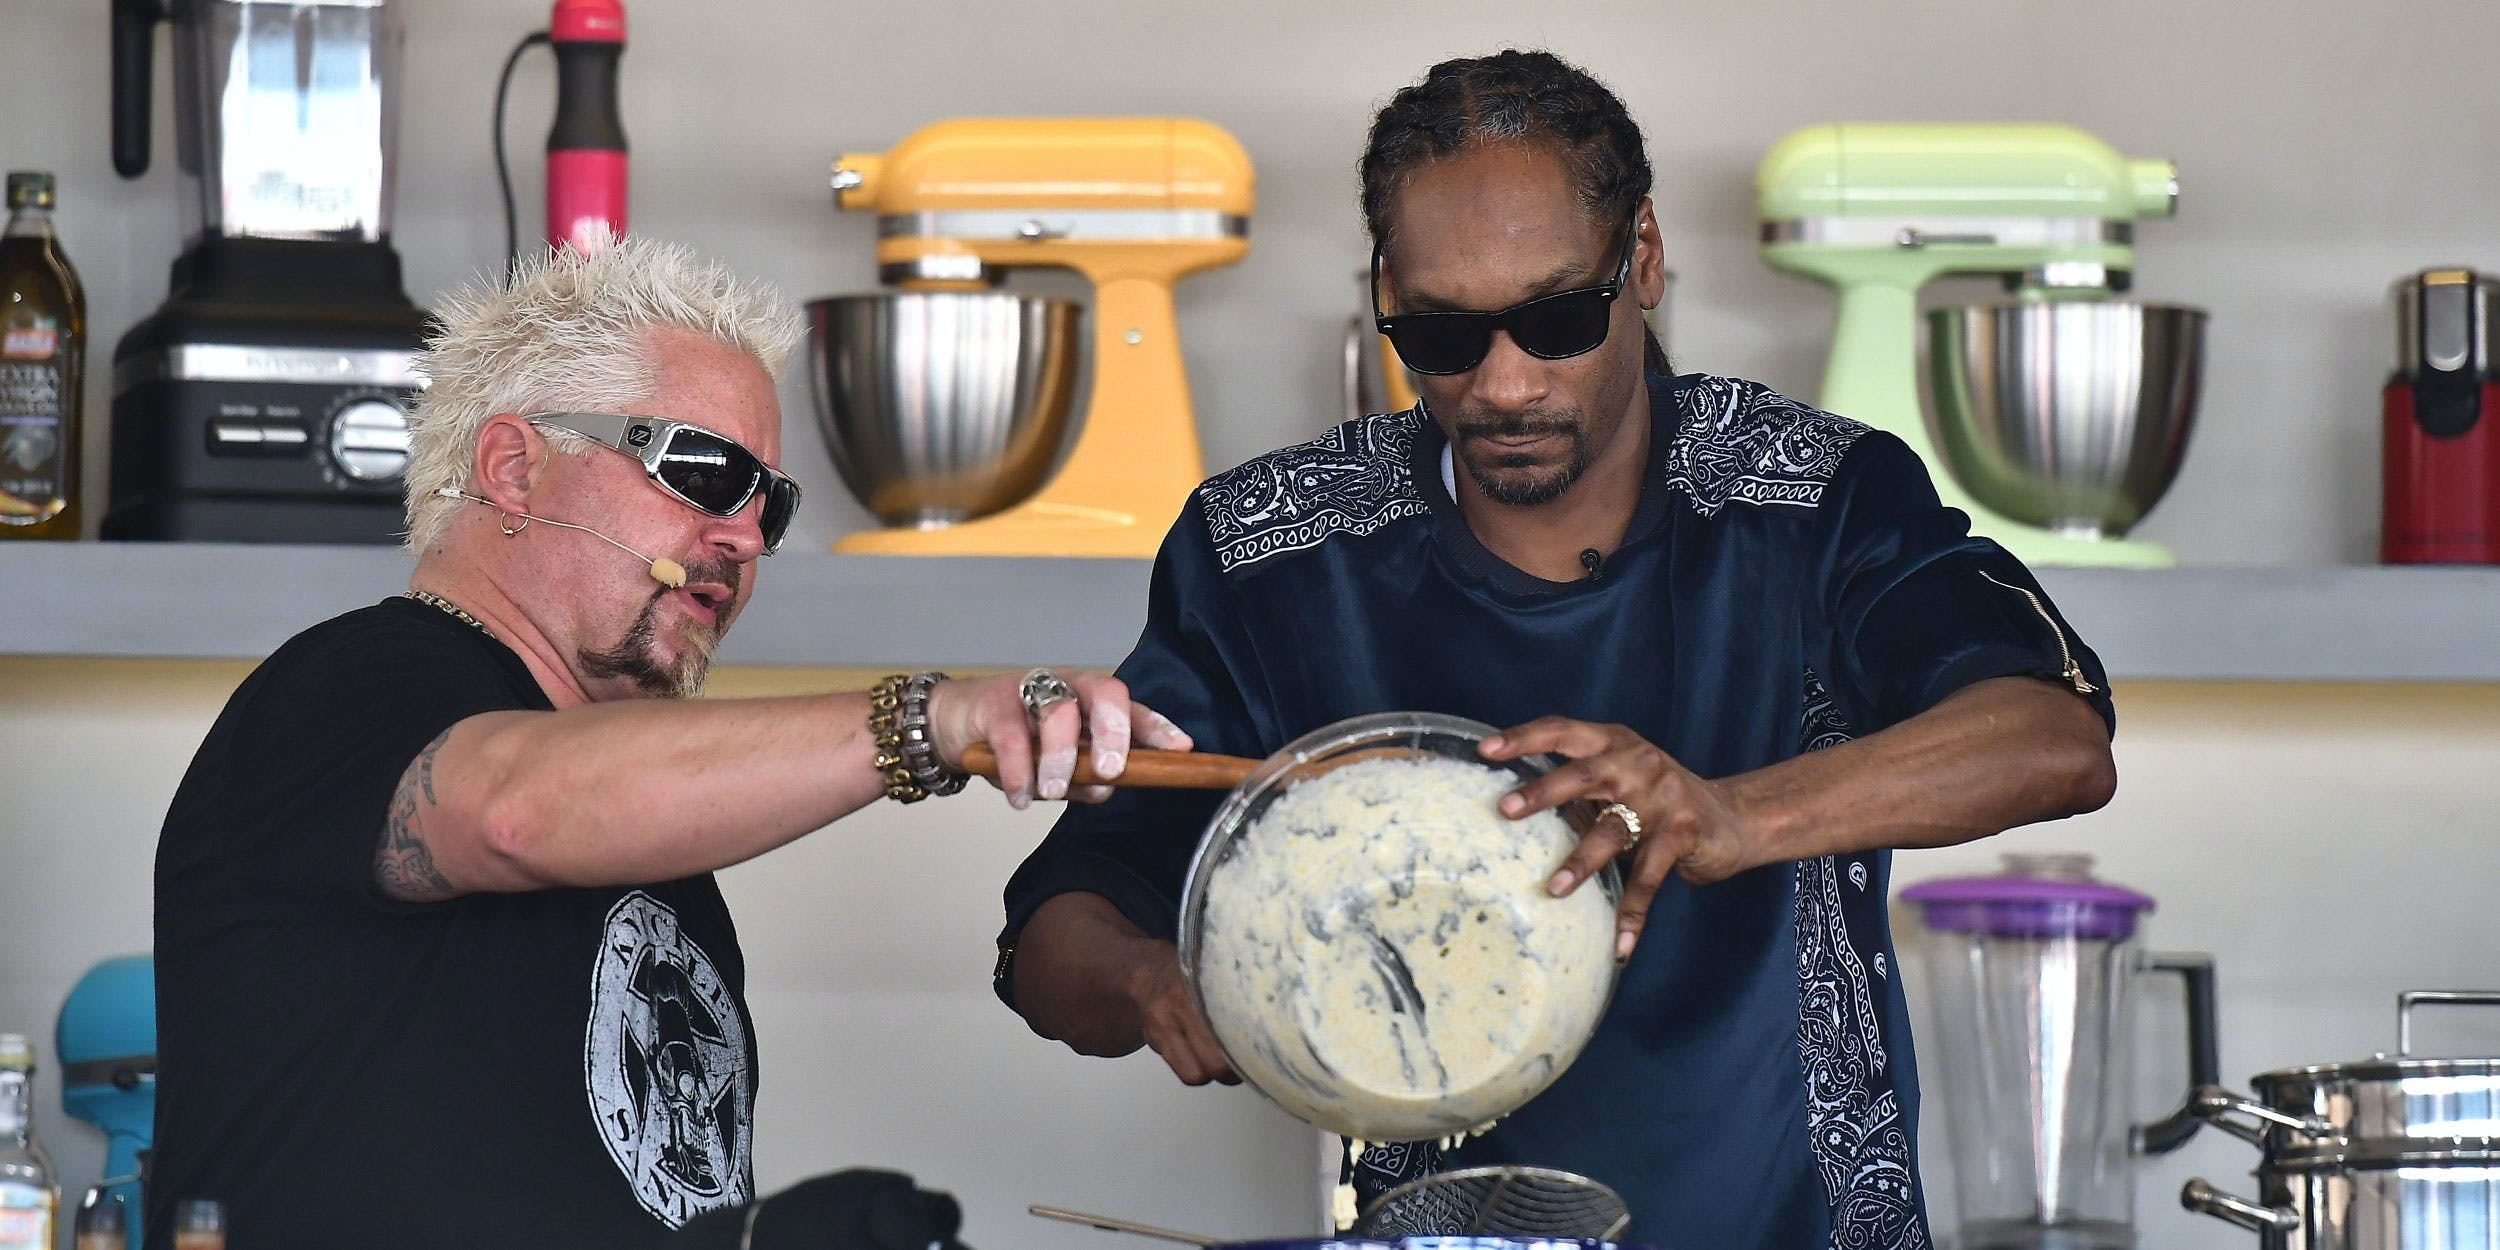 MIAMI BEACH, FL - FEBRUARY 25: Guy Fieri and Snoop Dogg cook on stage at Goya Foods' Grand Tasting Village on February 25, 2017 in Miami Beach, Florida. Snoop Dogg's cookbook will be available in stores on October 23. (Photo by Gustavo Caballero/Getty Images for SOBEWFF)